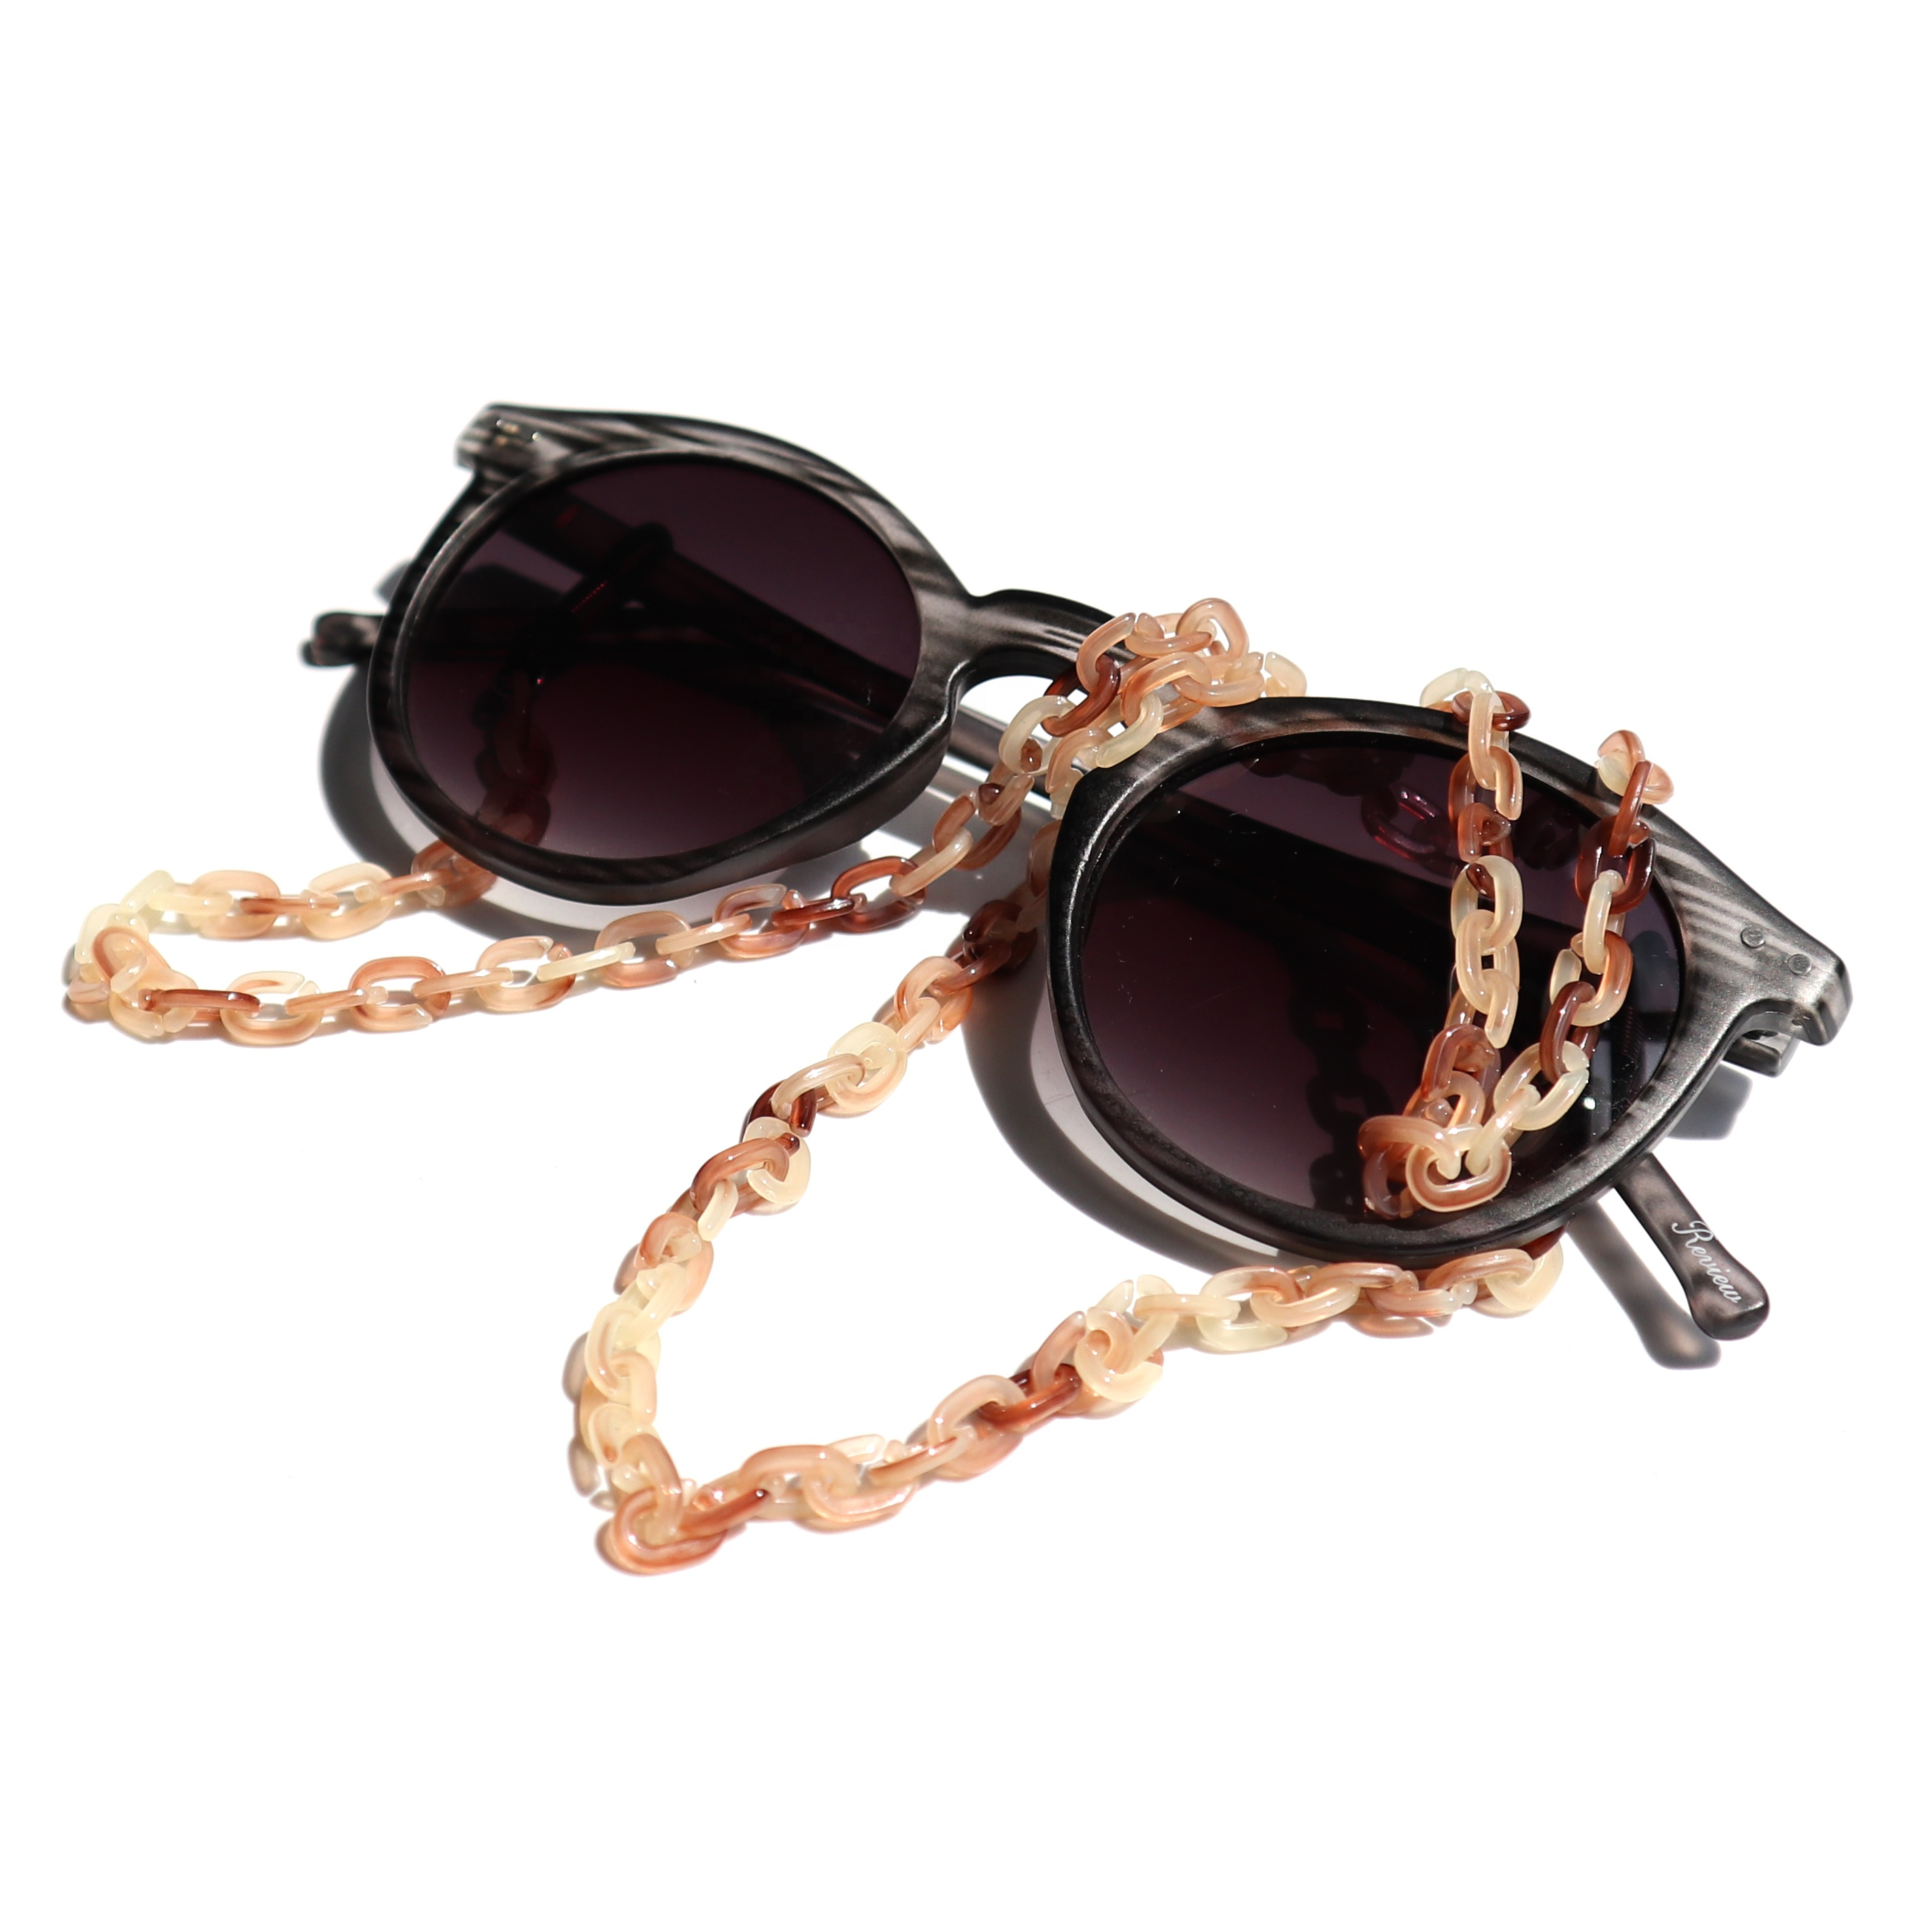 2020 New Arrival Acrylic Glasses Chain Fashion Chain Sunglasses In Stock Glasses Chain Eyewear Accessory Sunglass Cord